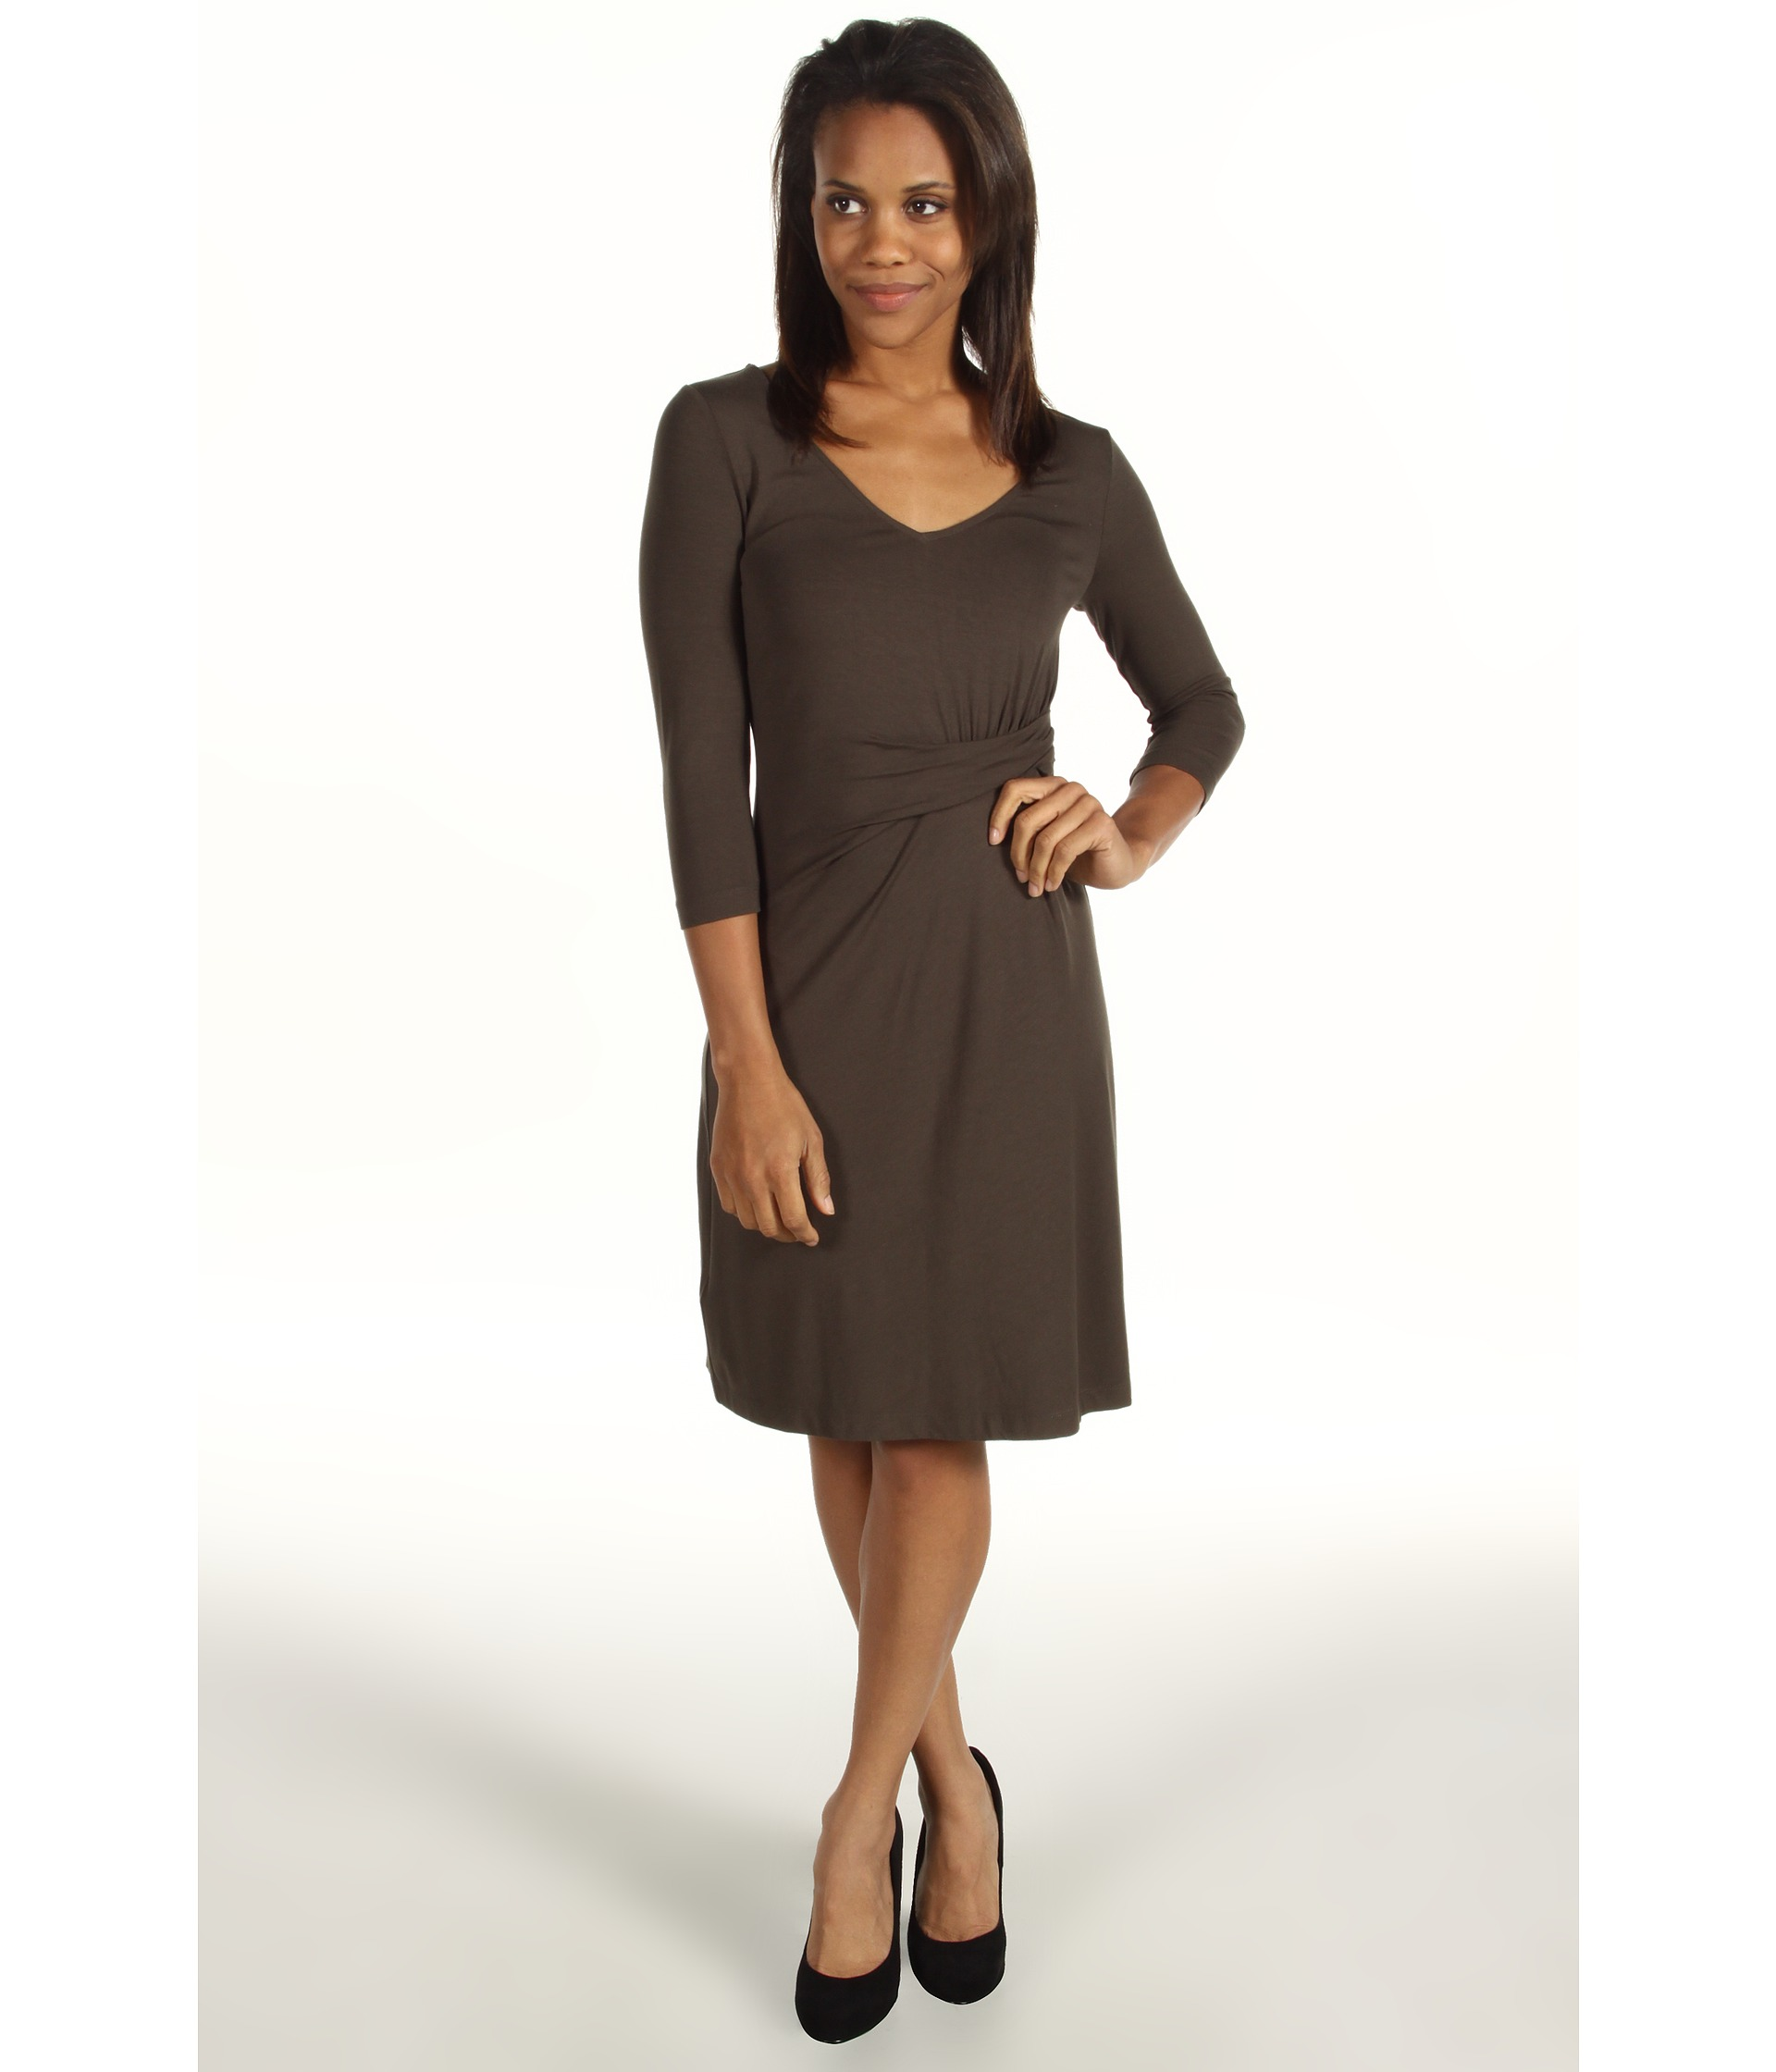 tommy bahama tambour tucked waist dress $ 138 00 tommy